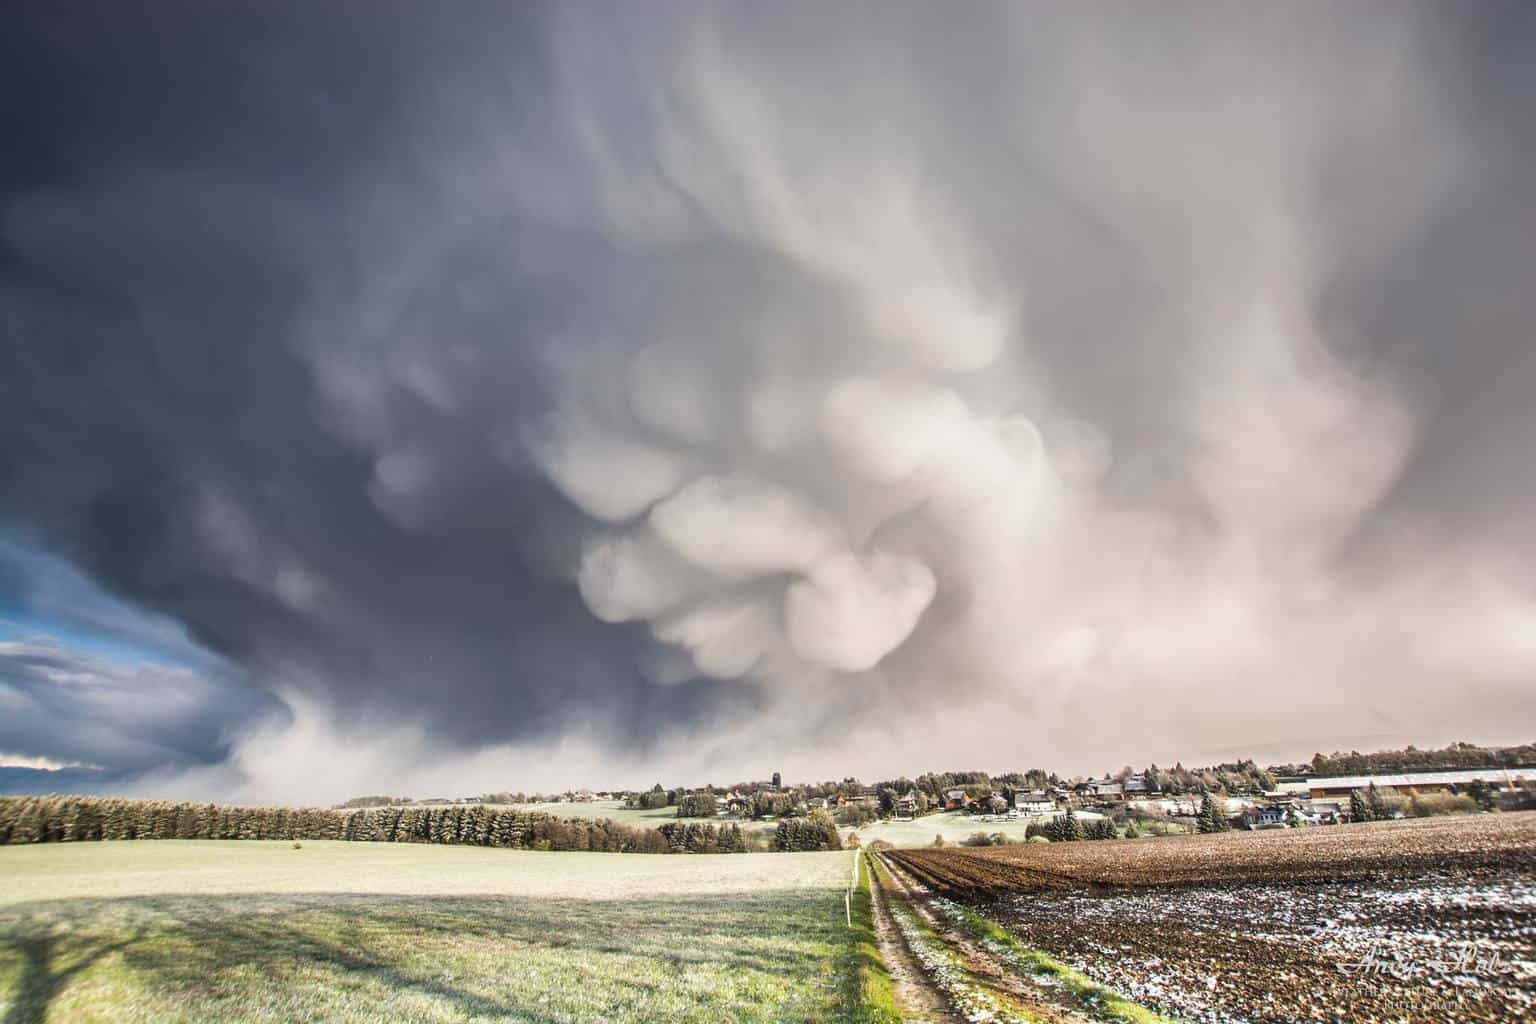 Backside of a snow thunderstorm with huge mammatus. About two years ago at home in Huertgenwald/Germany